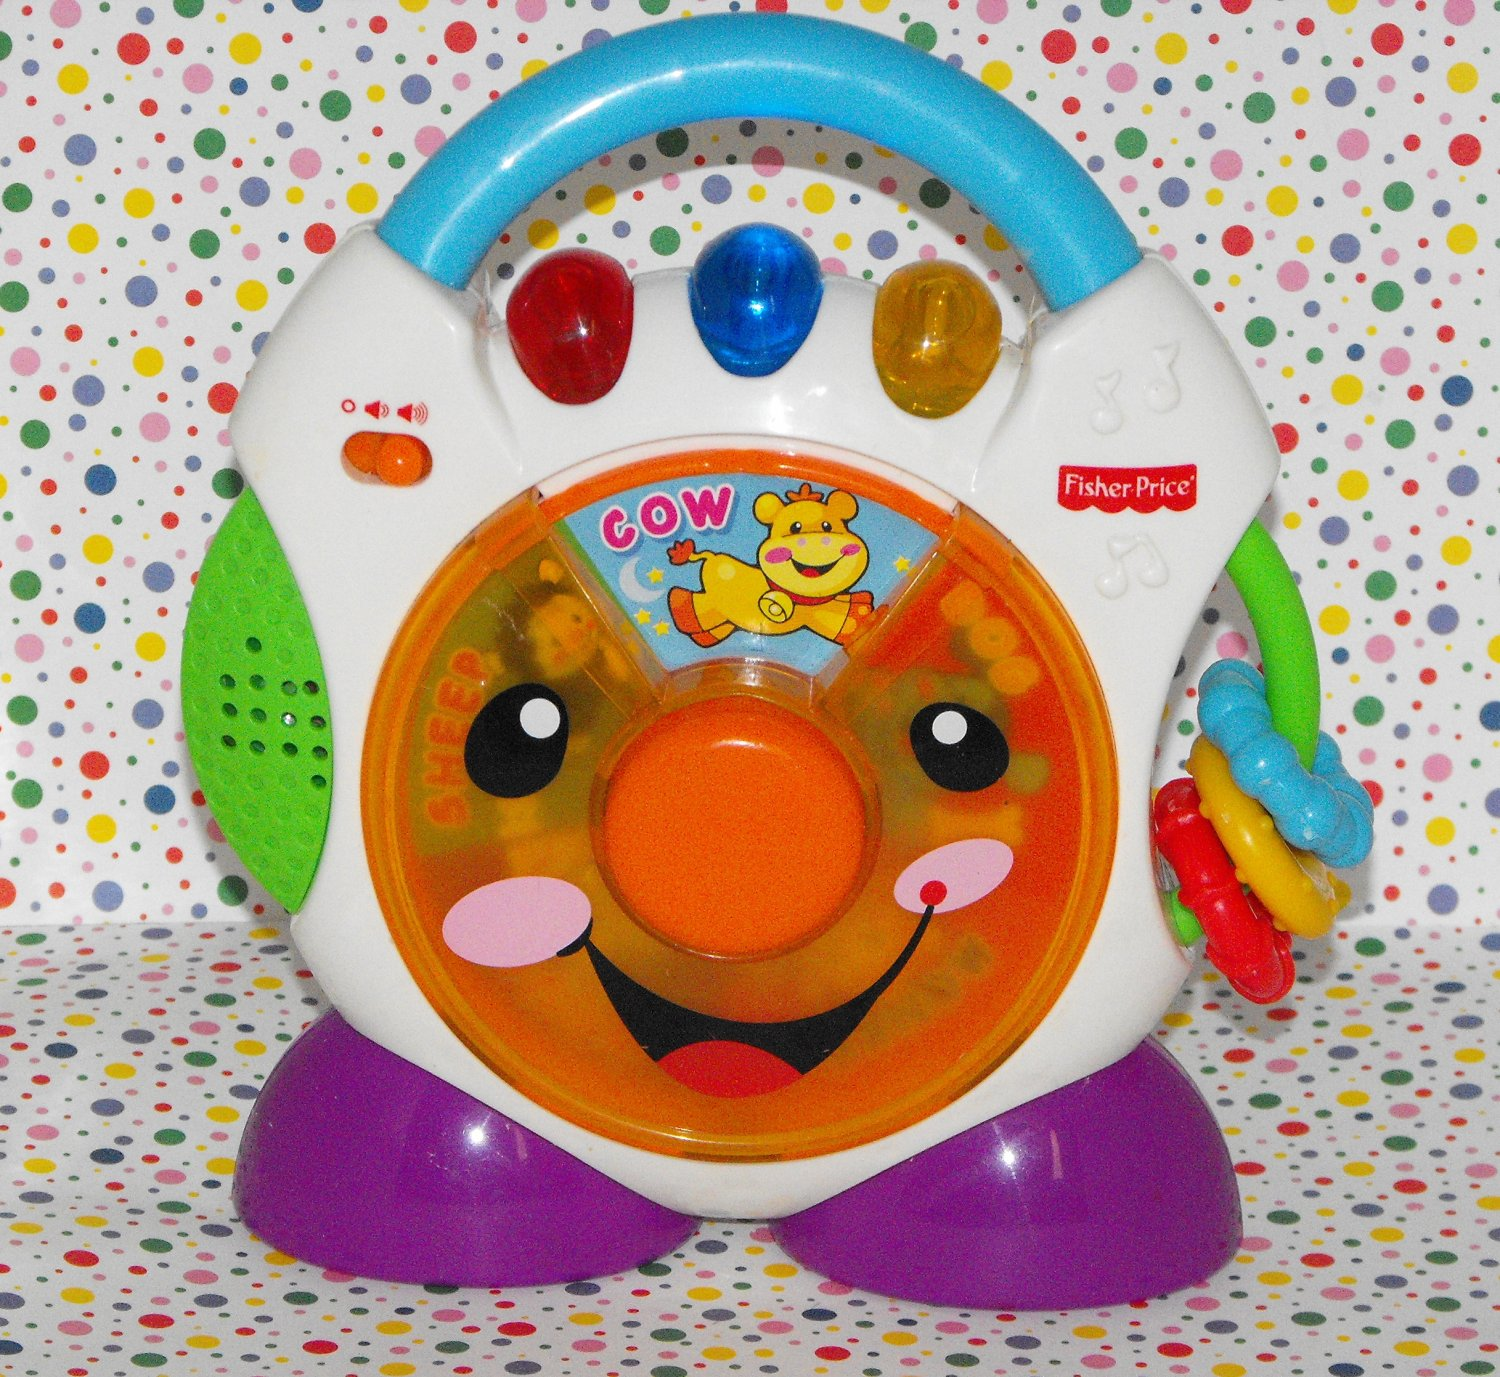 Fisher-Price Nursery Rhymes CD Player